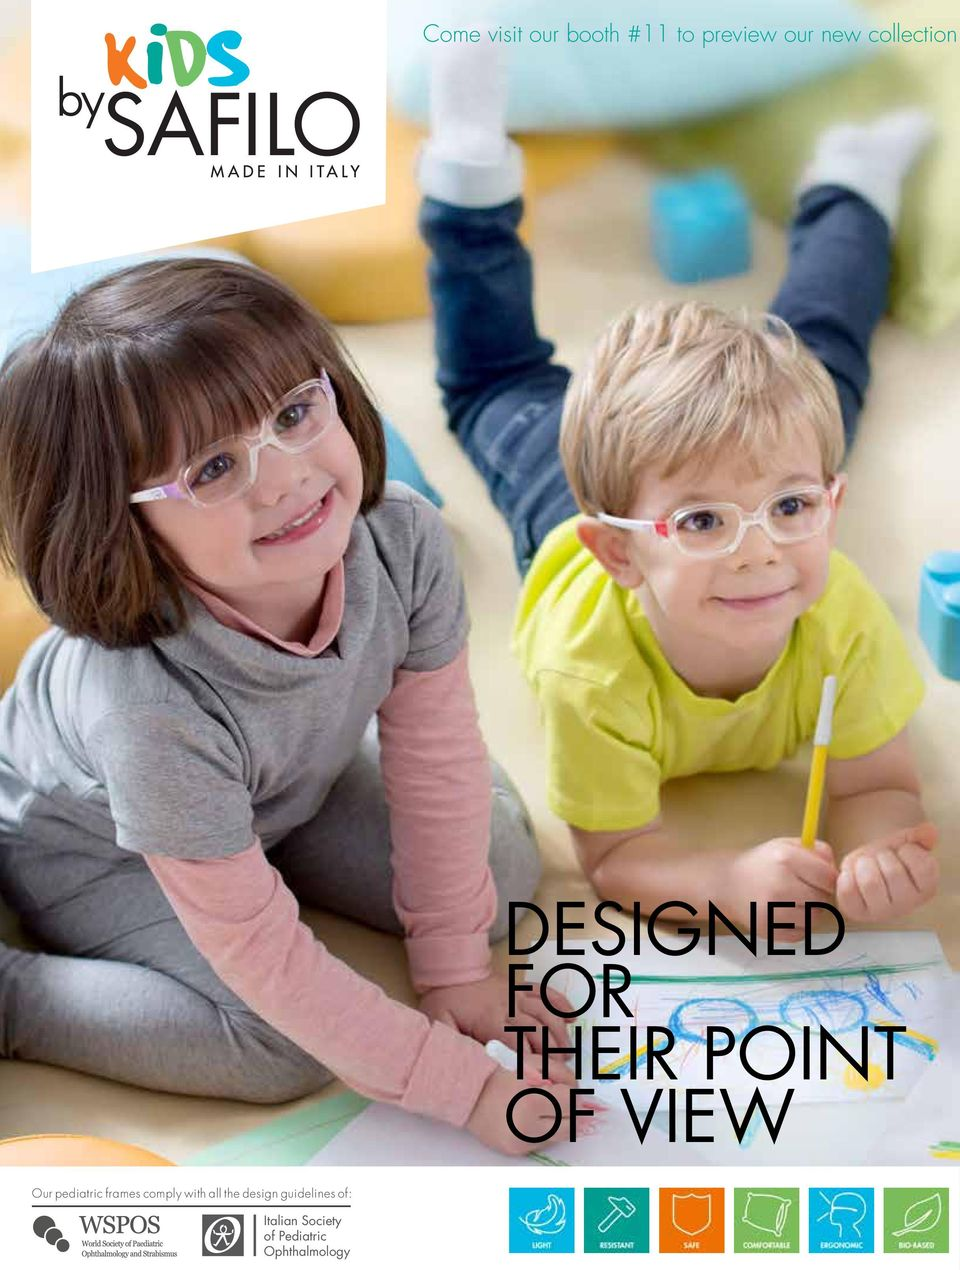 pediatric frames comply with all the design